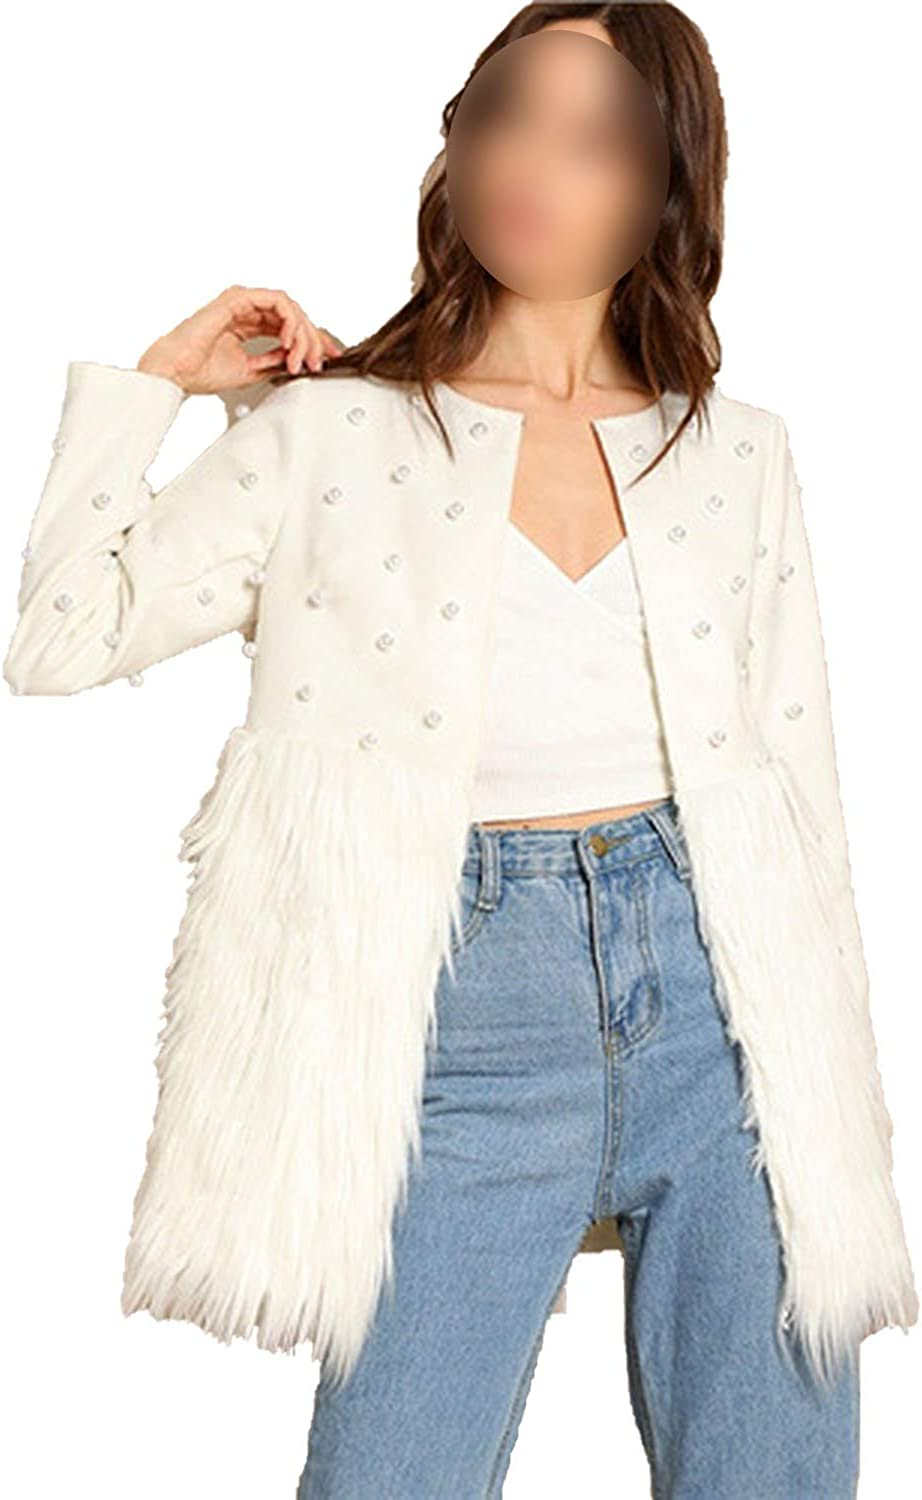 EnjoySexy White Solid Pearl Embellished Faux Fur Round Neck Jacket Autumn Workwear Coat Outerwear